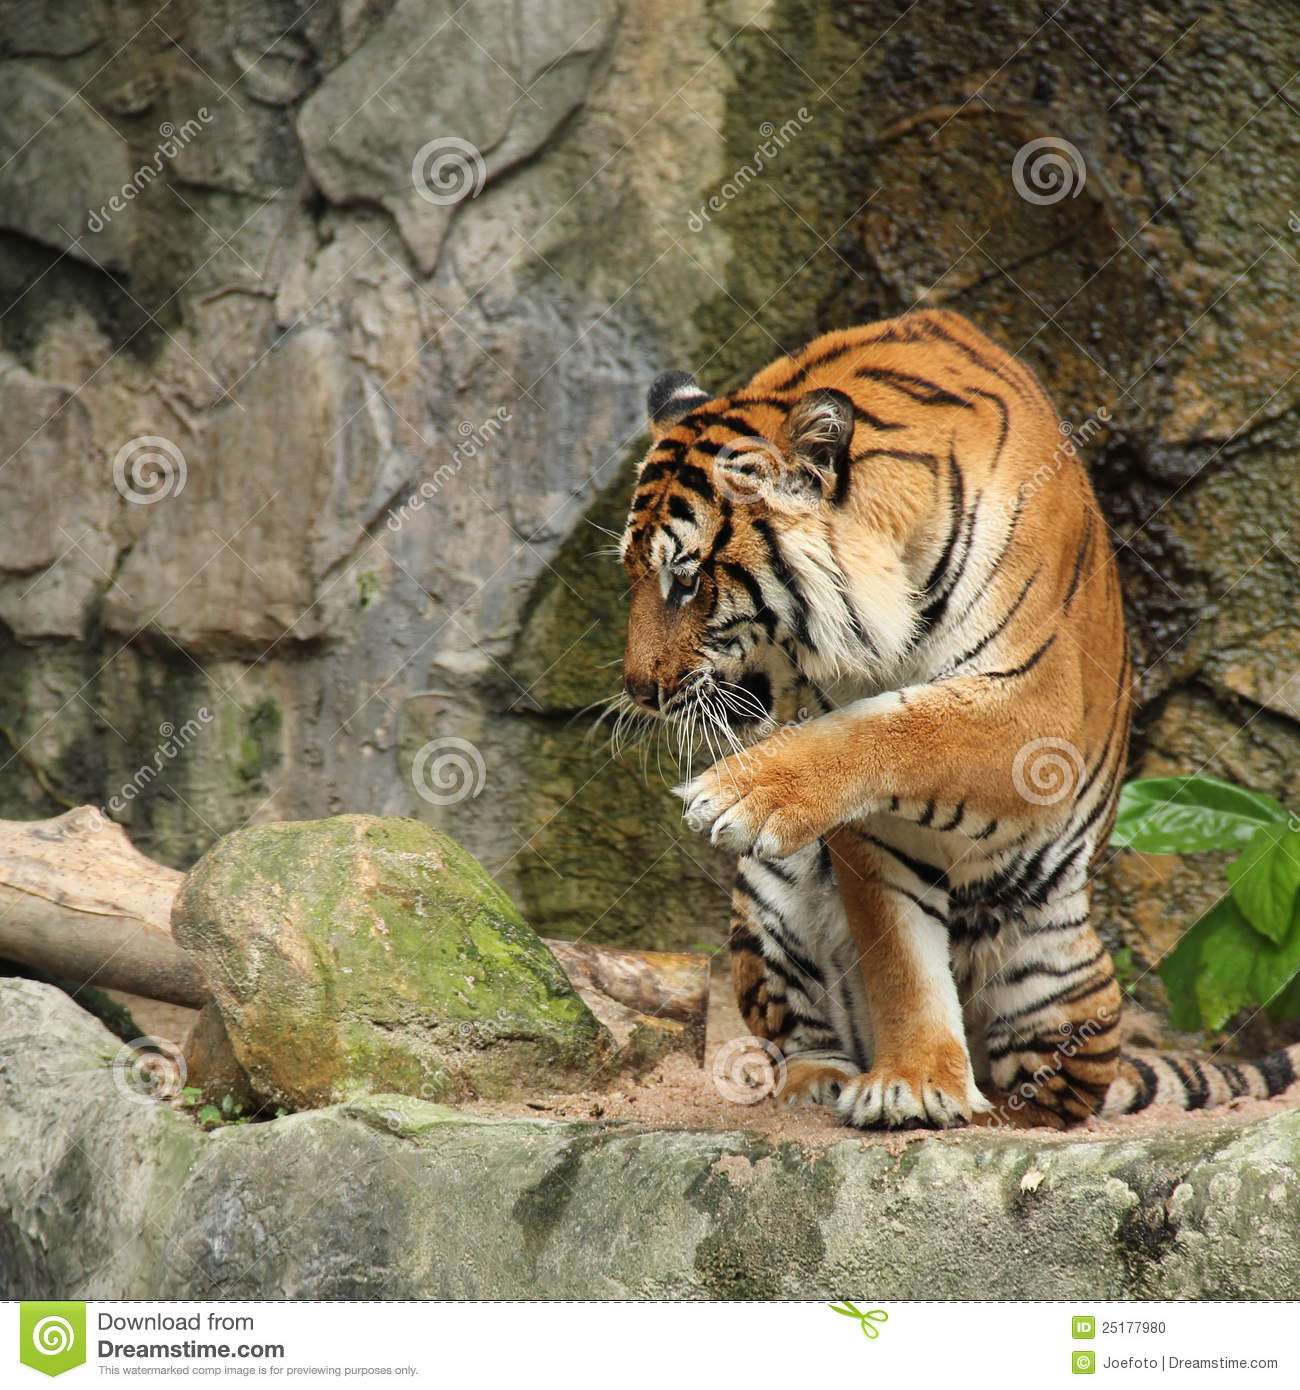 Royal Bengal Tiger In Action Stock Photo - Image: 25177980